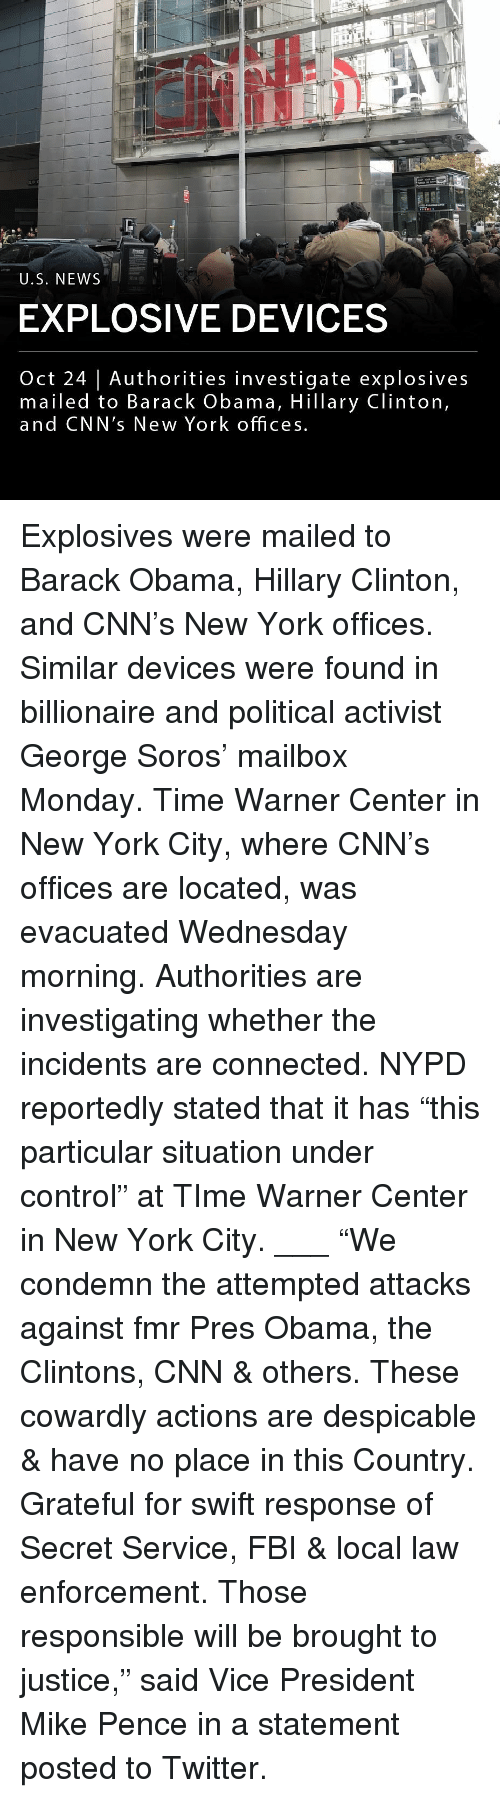 """explosive: U.S. NEWS  EXPLOSIVE DEVICES  Oct 24   Authorities investigate explosives  mailed to Barack Obama, Hillary Clinton,  and CNN's New York offices Explosives were mailed to Barack Obama, Hillary Clinton, and CNN's New York offices. Similar devices were found in billionaire and political activist George Soros' mailbox Monday. Time Warner Center in New York City, where CNN's offices are located, was evacuated Wednesday morning. Authorities are investigating whether the incidents are connected. NYPD reportedly stated that it has """"this particular situation under control"""" at TIme Warner Center in New York City. ___ """"We condemn the attempted attacks against fmr Pres Obama, the Clintons, CNN & others. These cowardly actions are despicable & have no place in this Country. Grateful for swift response of Secret Service, FBI & local law enforcement. Those responsible will be brought to justice,"""" said Vice President Mike Pence in a statement posted to Twitter."""